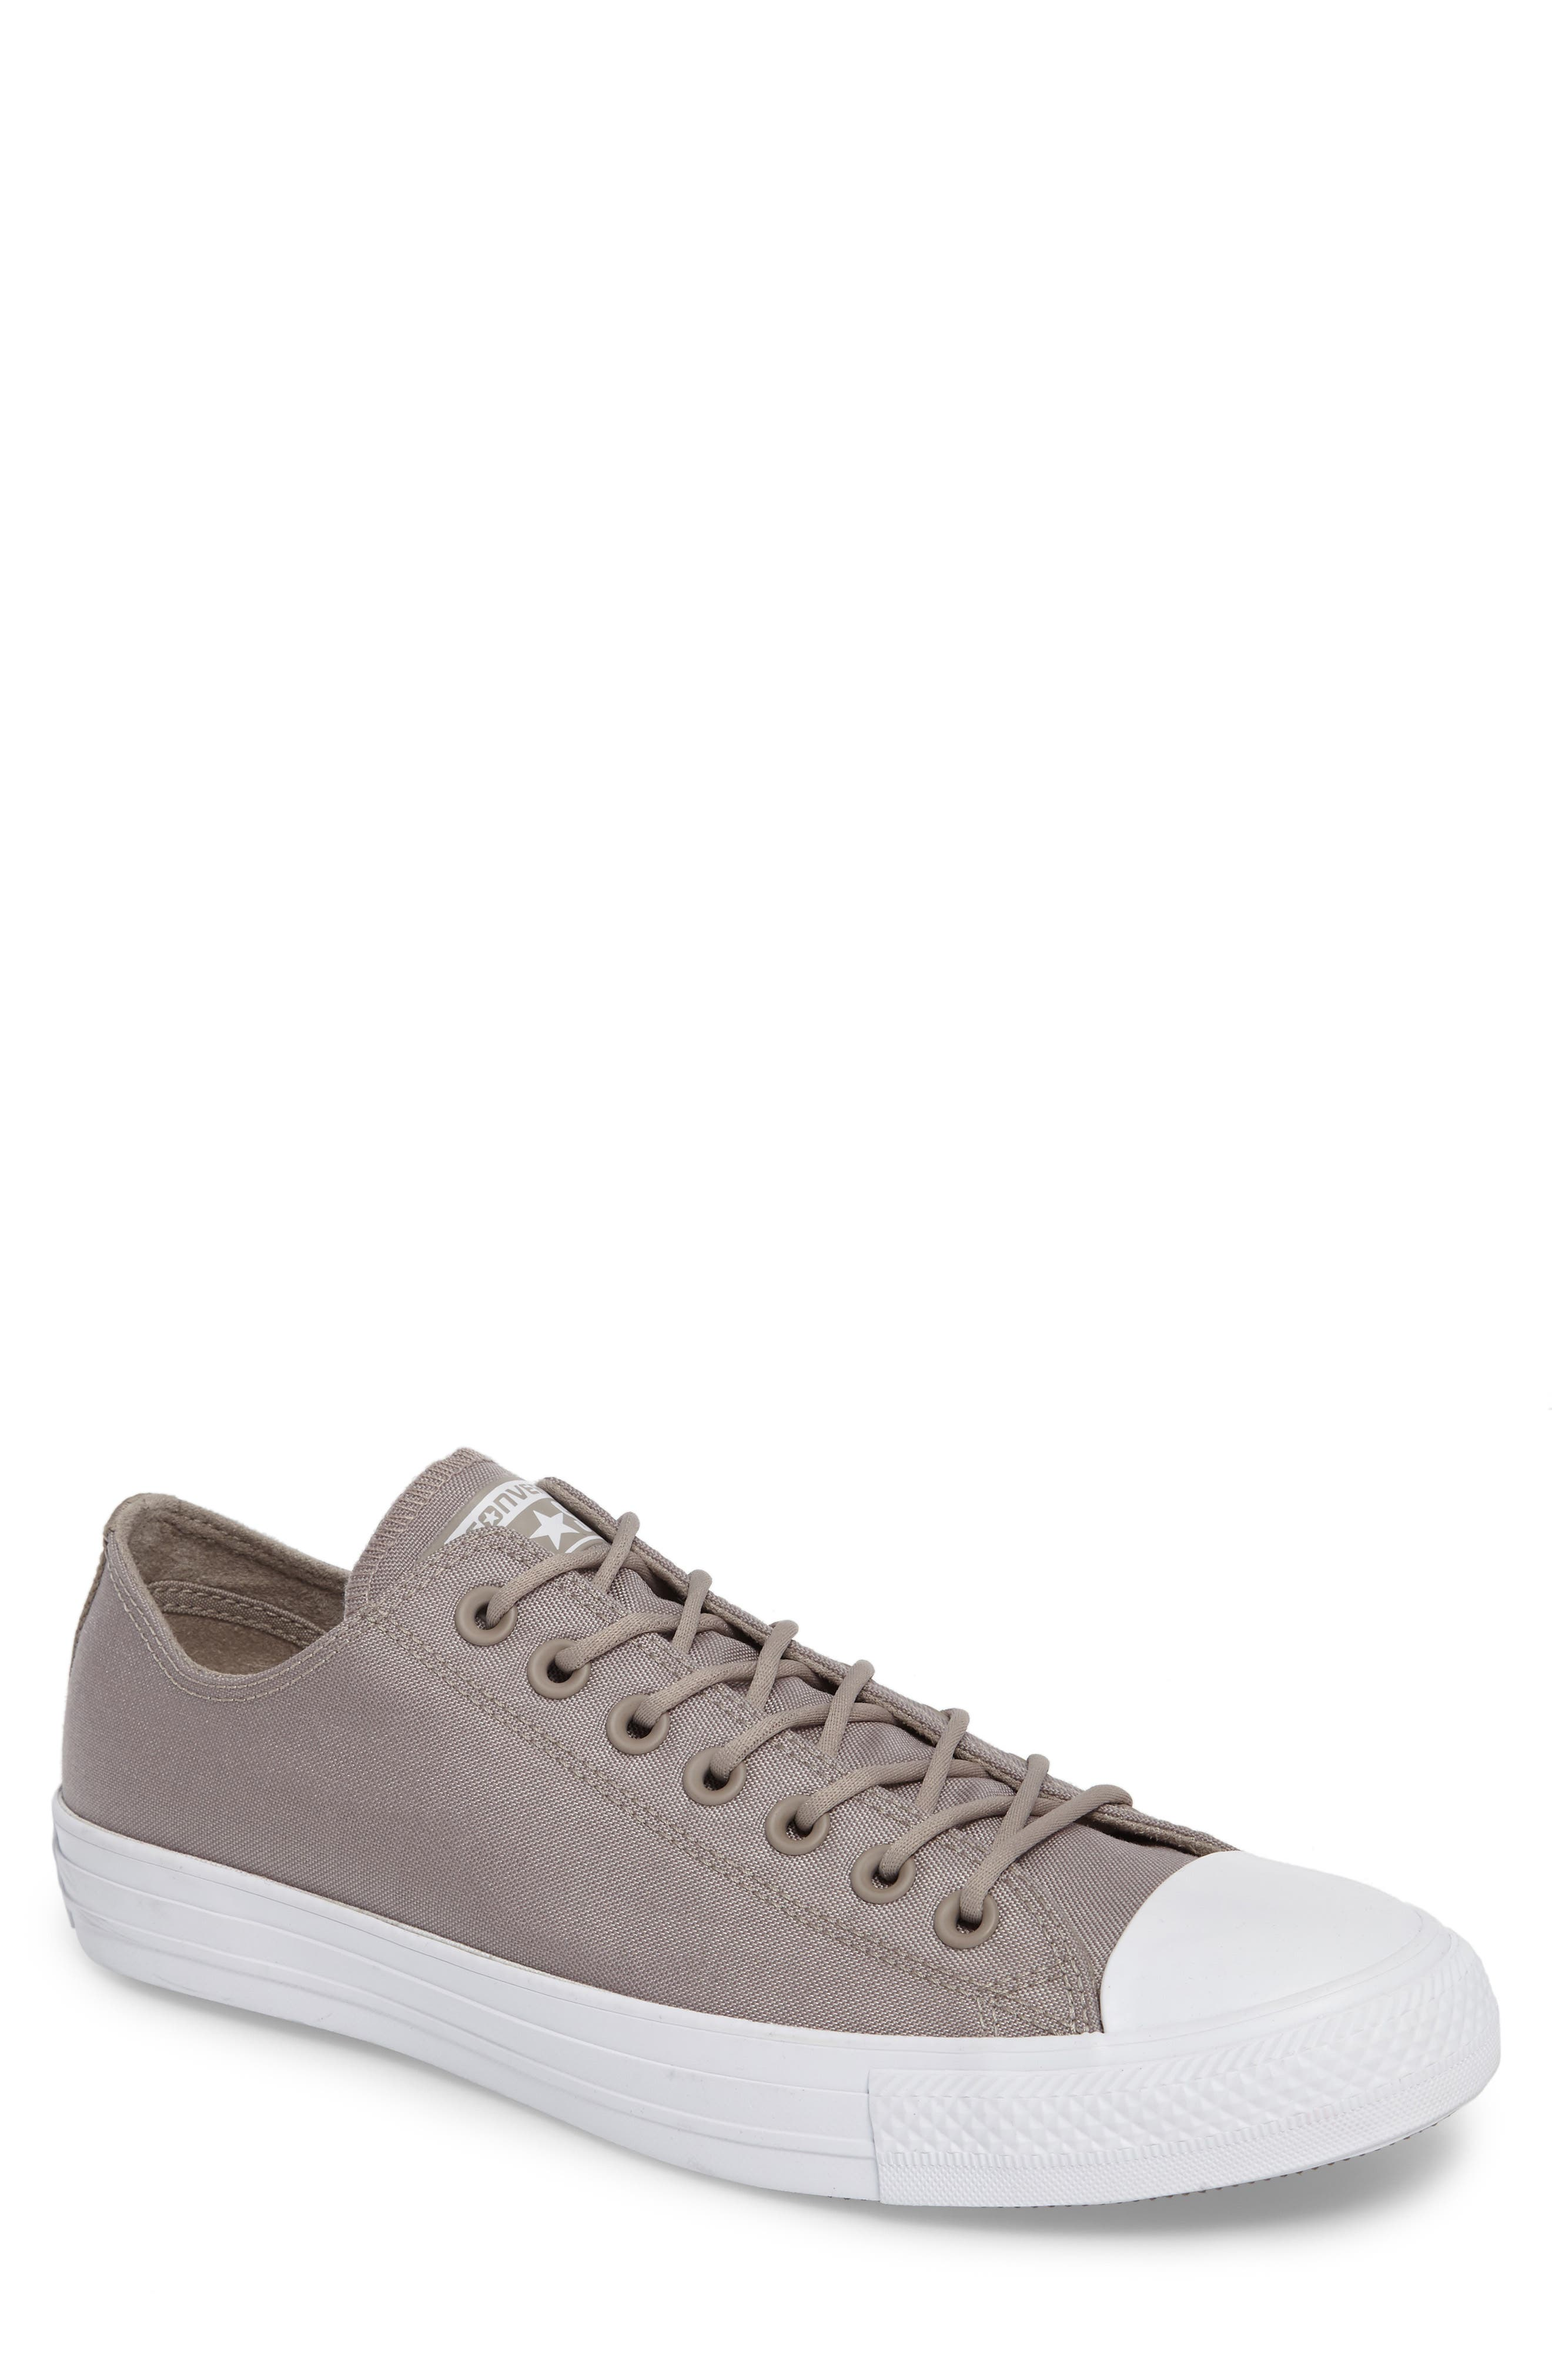 Chuck Taylor<sup>®</sup> All Star<sup>®</sup> Ox Sneaker,                         Main,                         color, 232